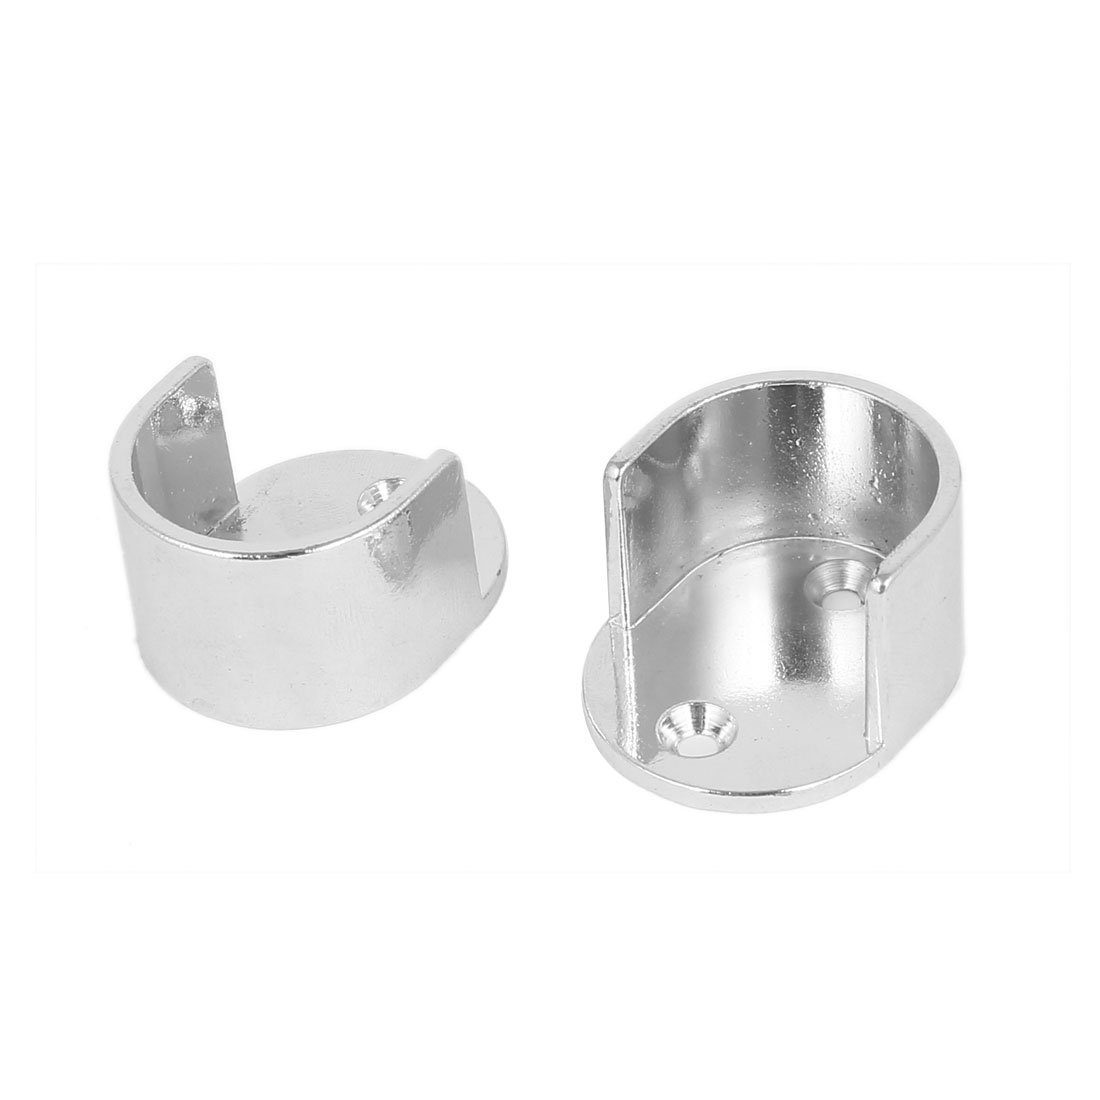 sourcingmap® 25mm Dia Rod Flange Holder Bracket Silver Tone 2PCS for Wardrobe Closet a16080100ux0781